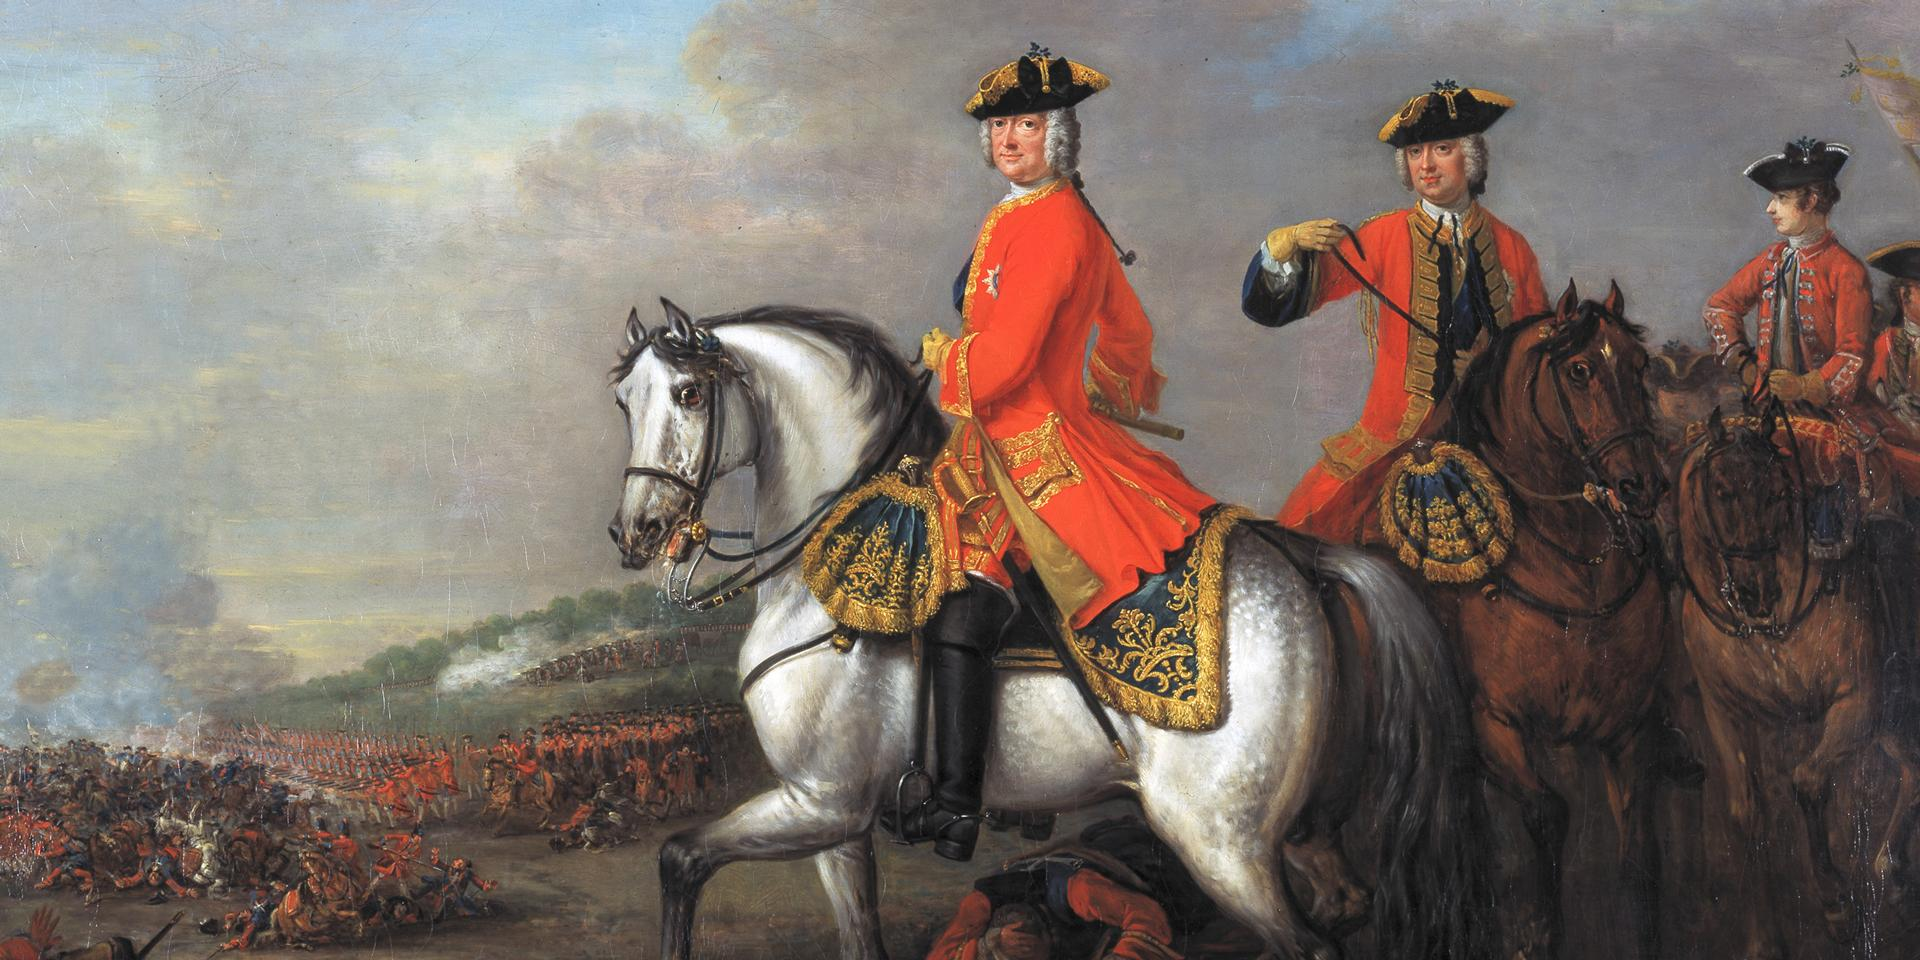 King George II at the Battle of Dettingen, 1743